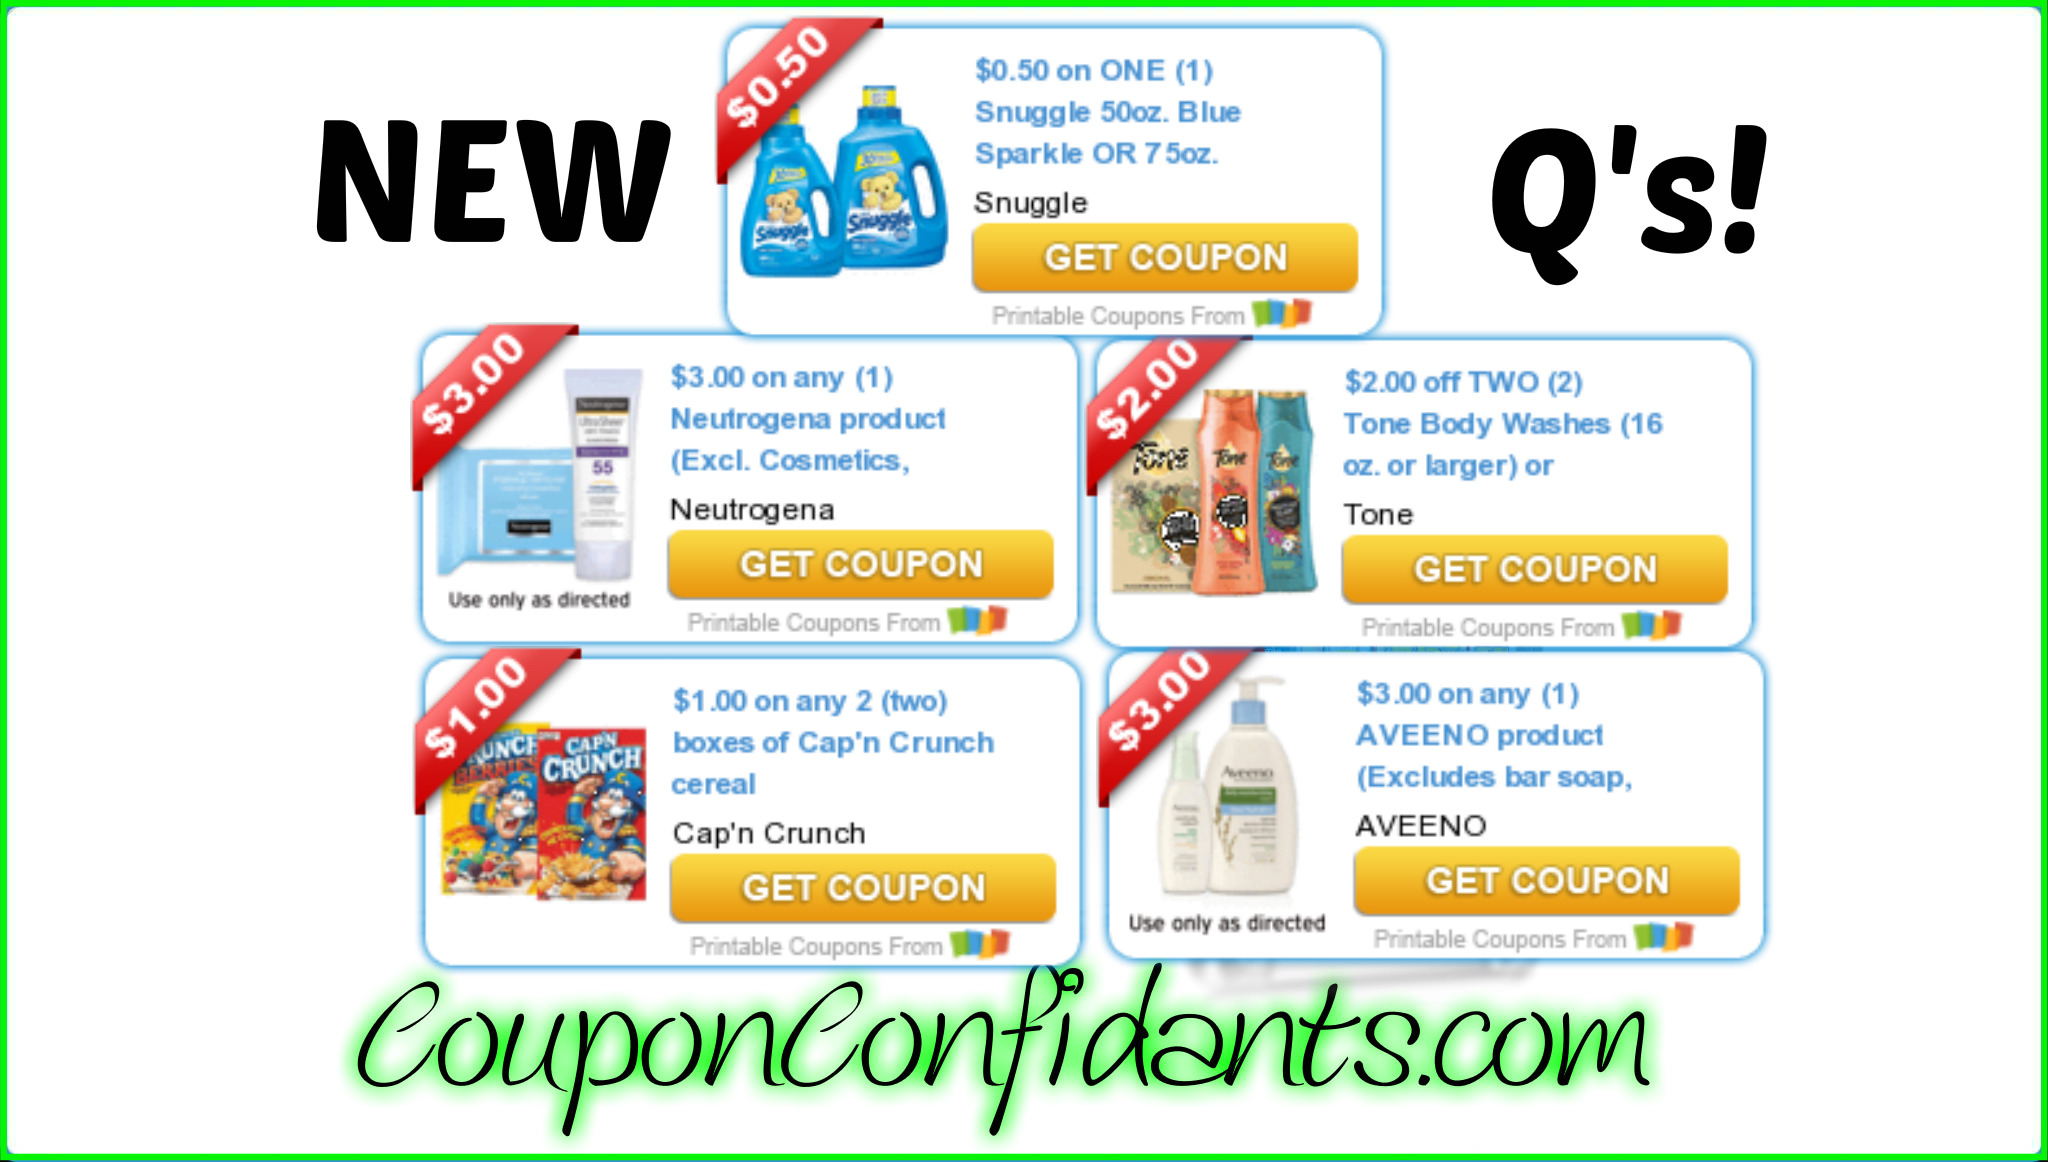 NEW Coupons to Print!! YES!